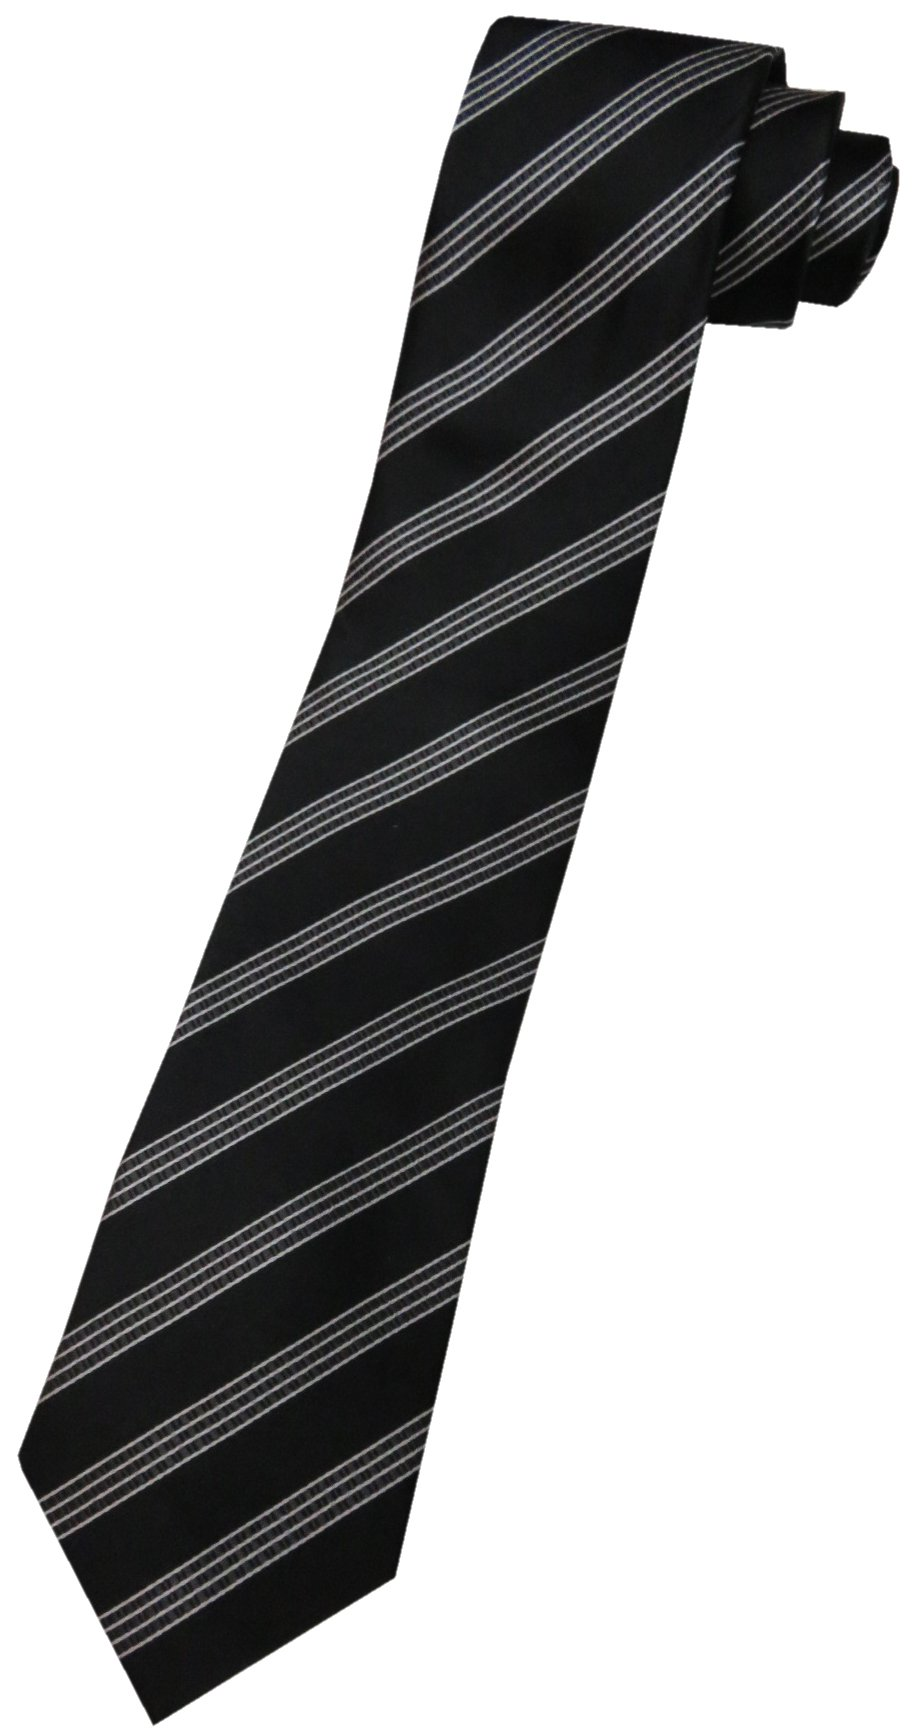 Donald Trump Neck Tie Black and Silver Striped by Donald Trump (Image #1)